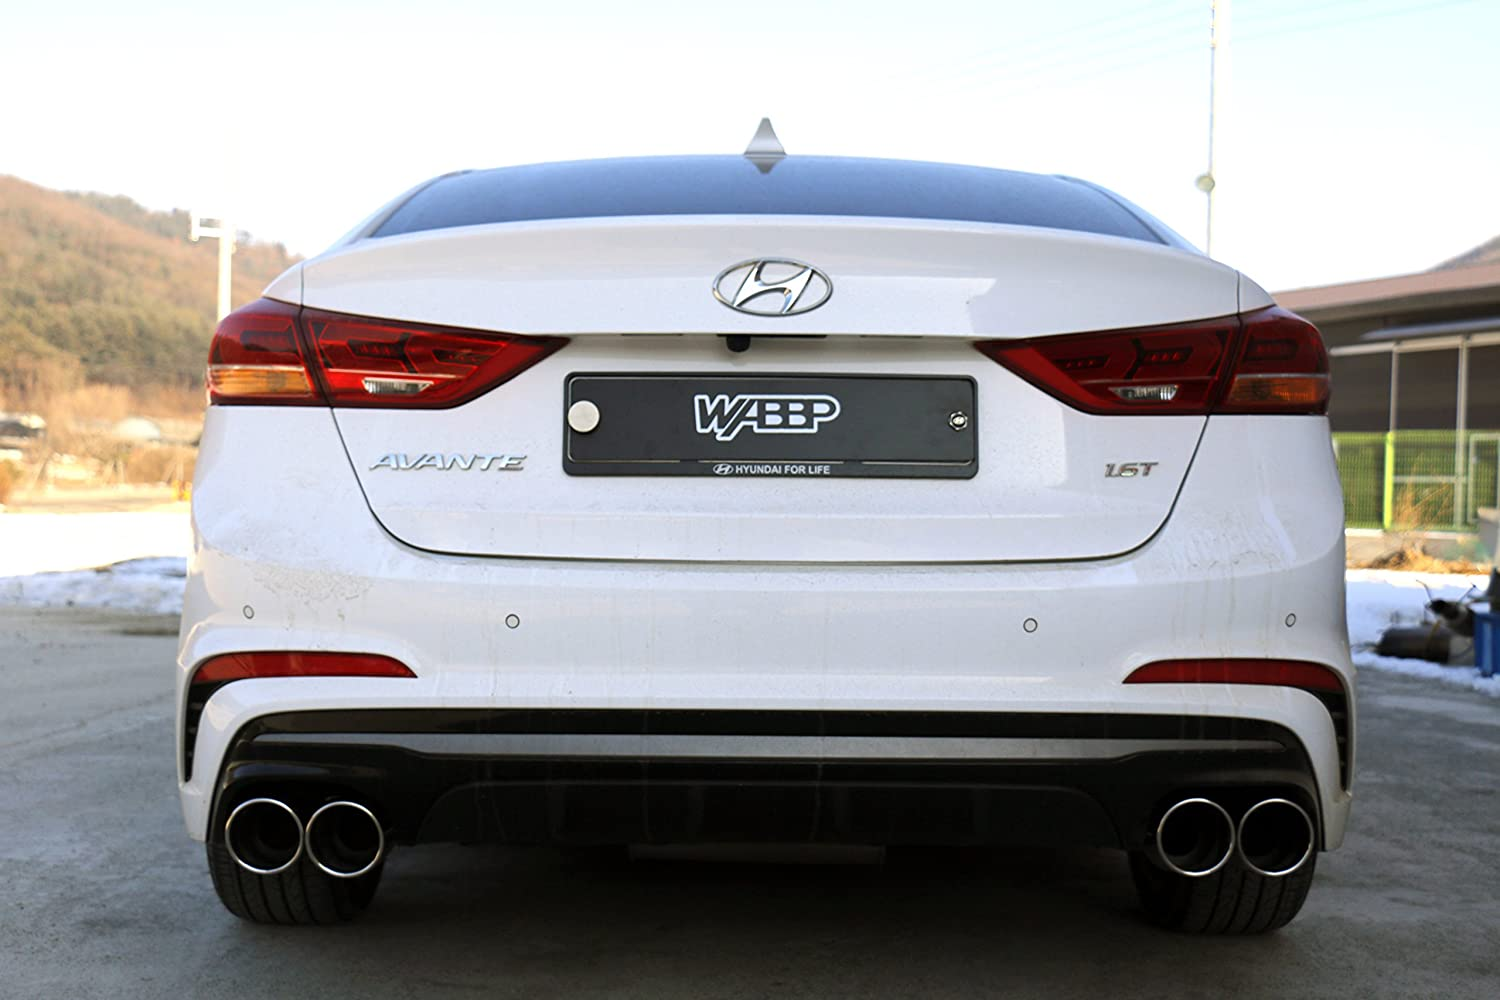 WABBP Double Tips Exhaust Tips 2.3 inlet 3.9 outlet 9.5 Long Exhaust Tail Pipe Silver, 3.9